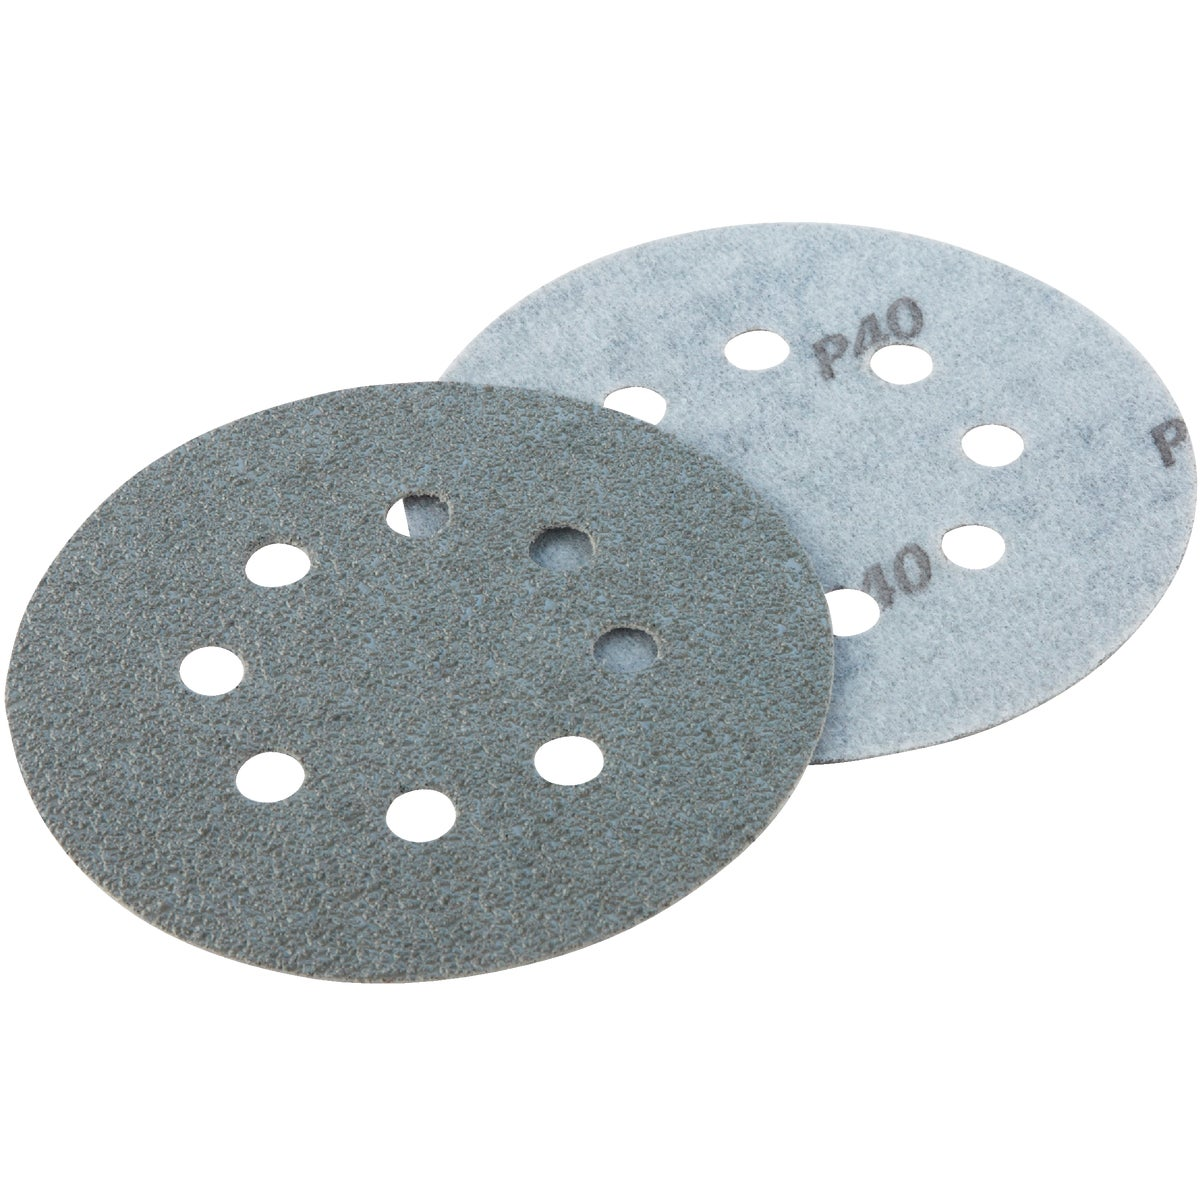 "8 HOLE 5"" 40G SAND DISC - 12280 by Ali Industries Inc"